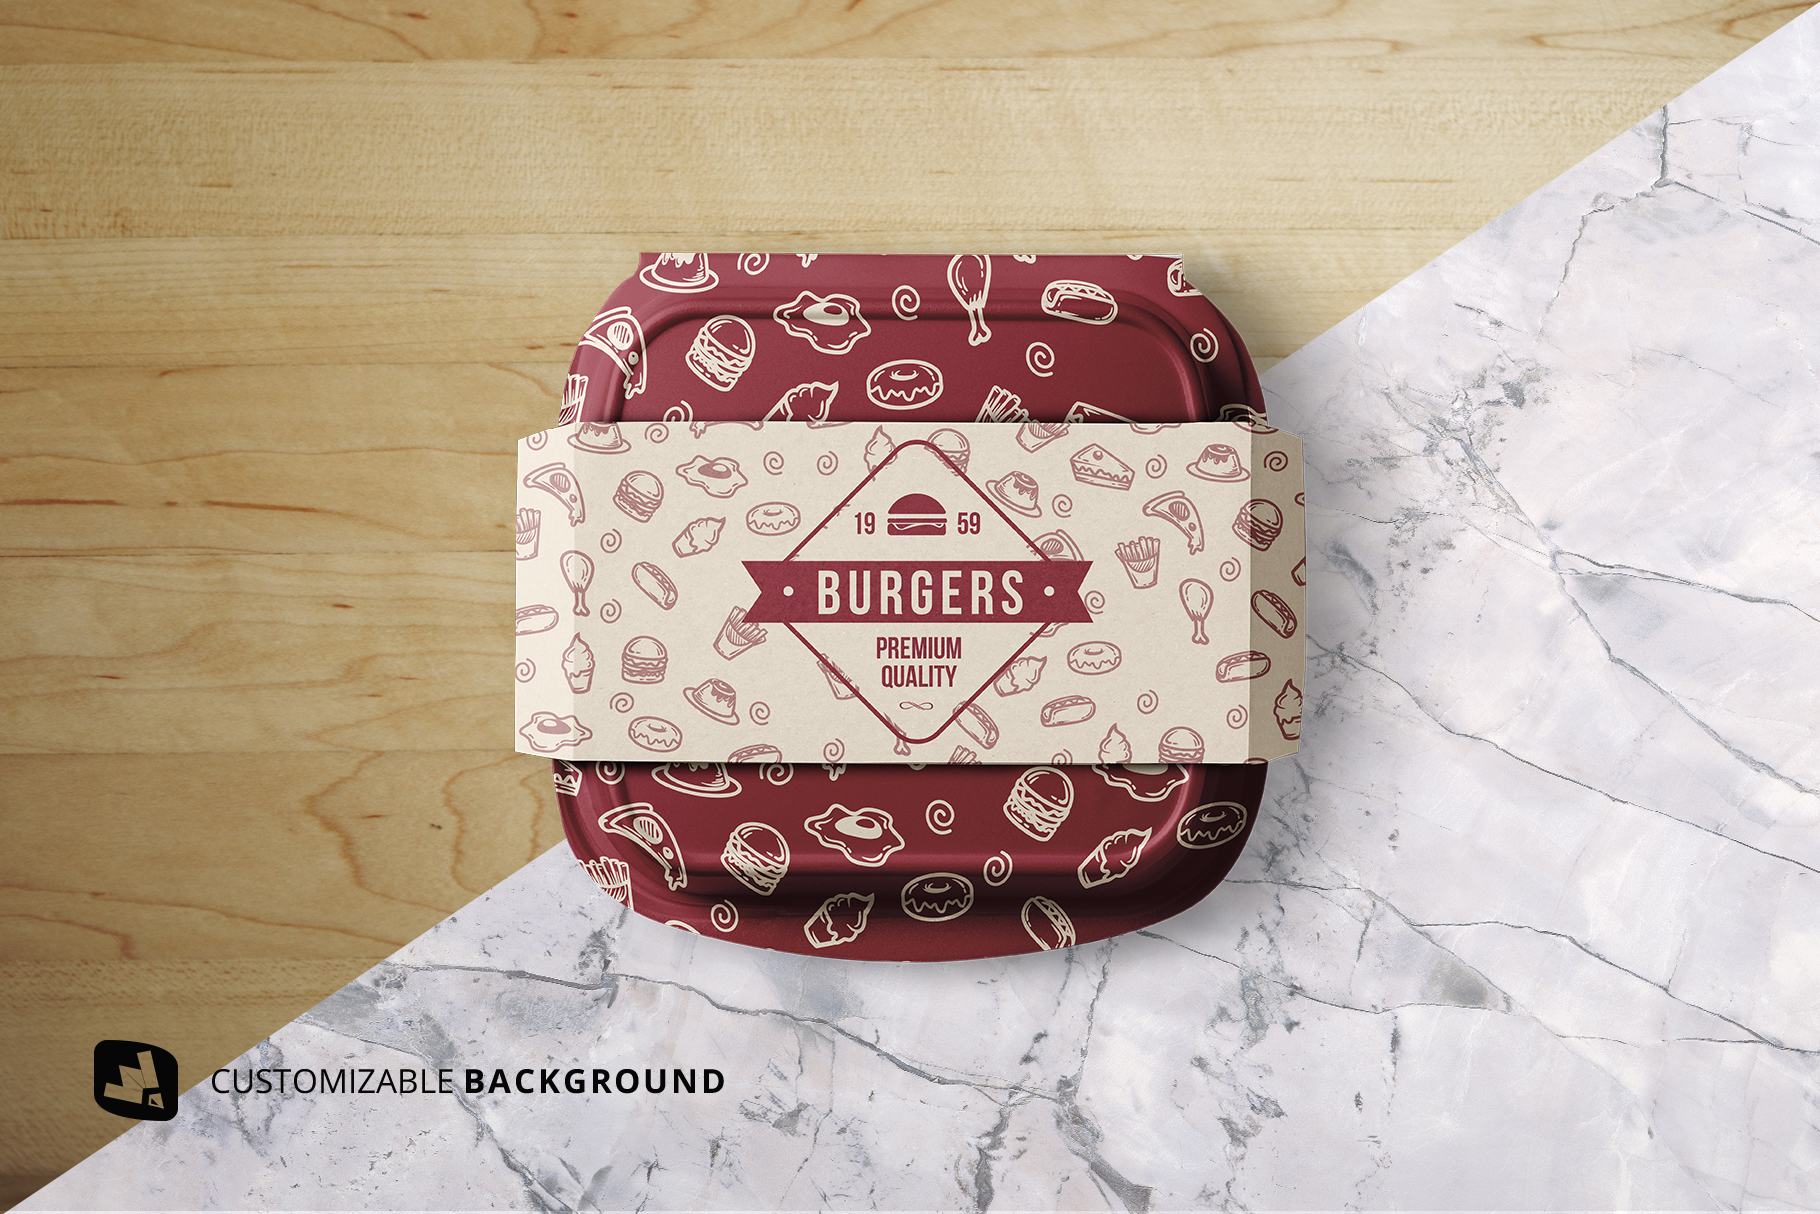 background options of the fast food container packaging mockup